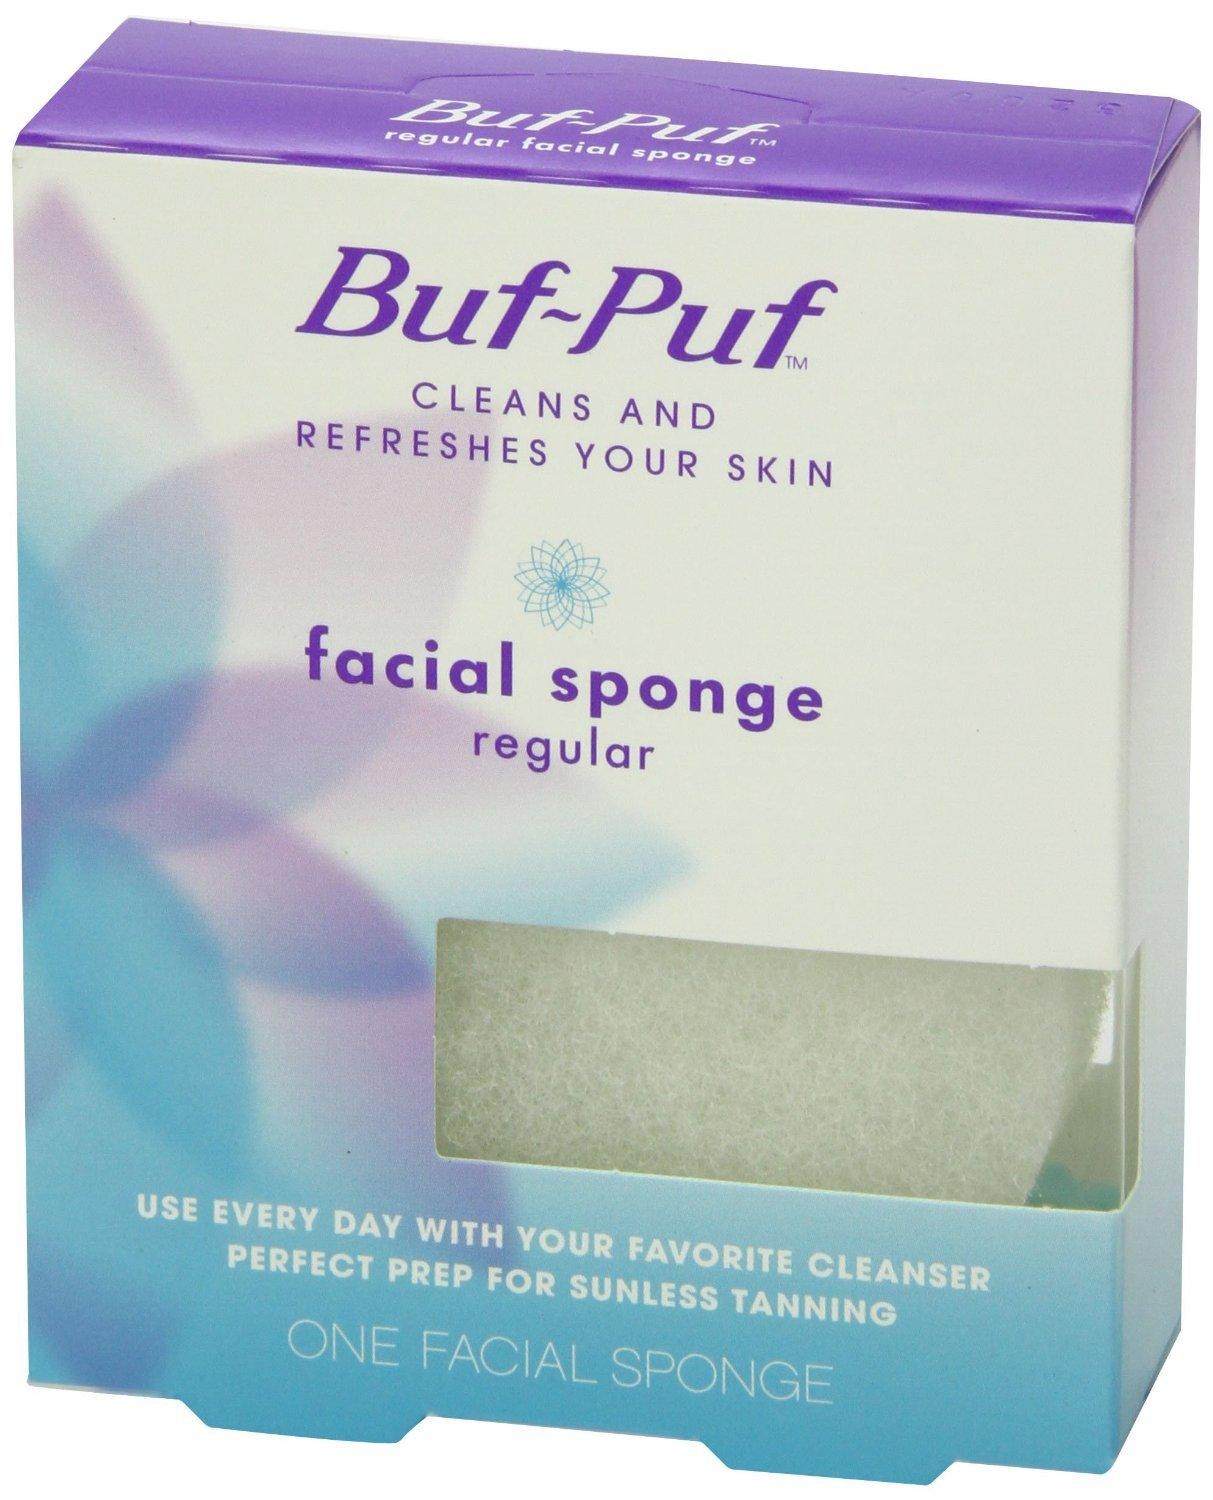 Girls naked buf puf facial sponges shot